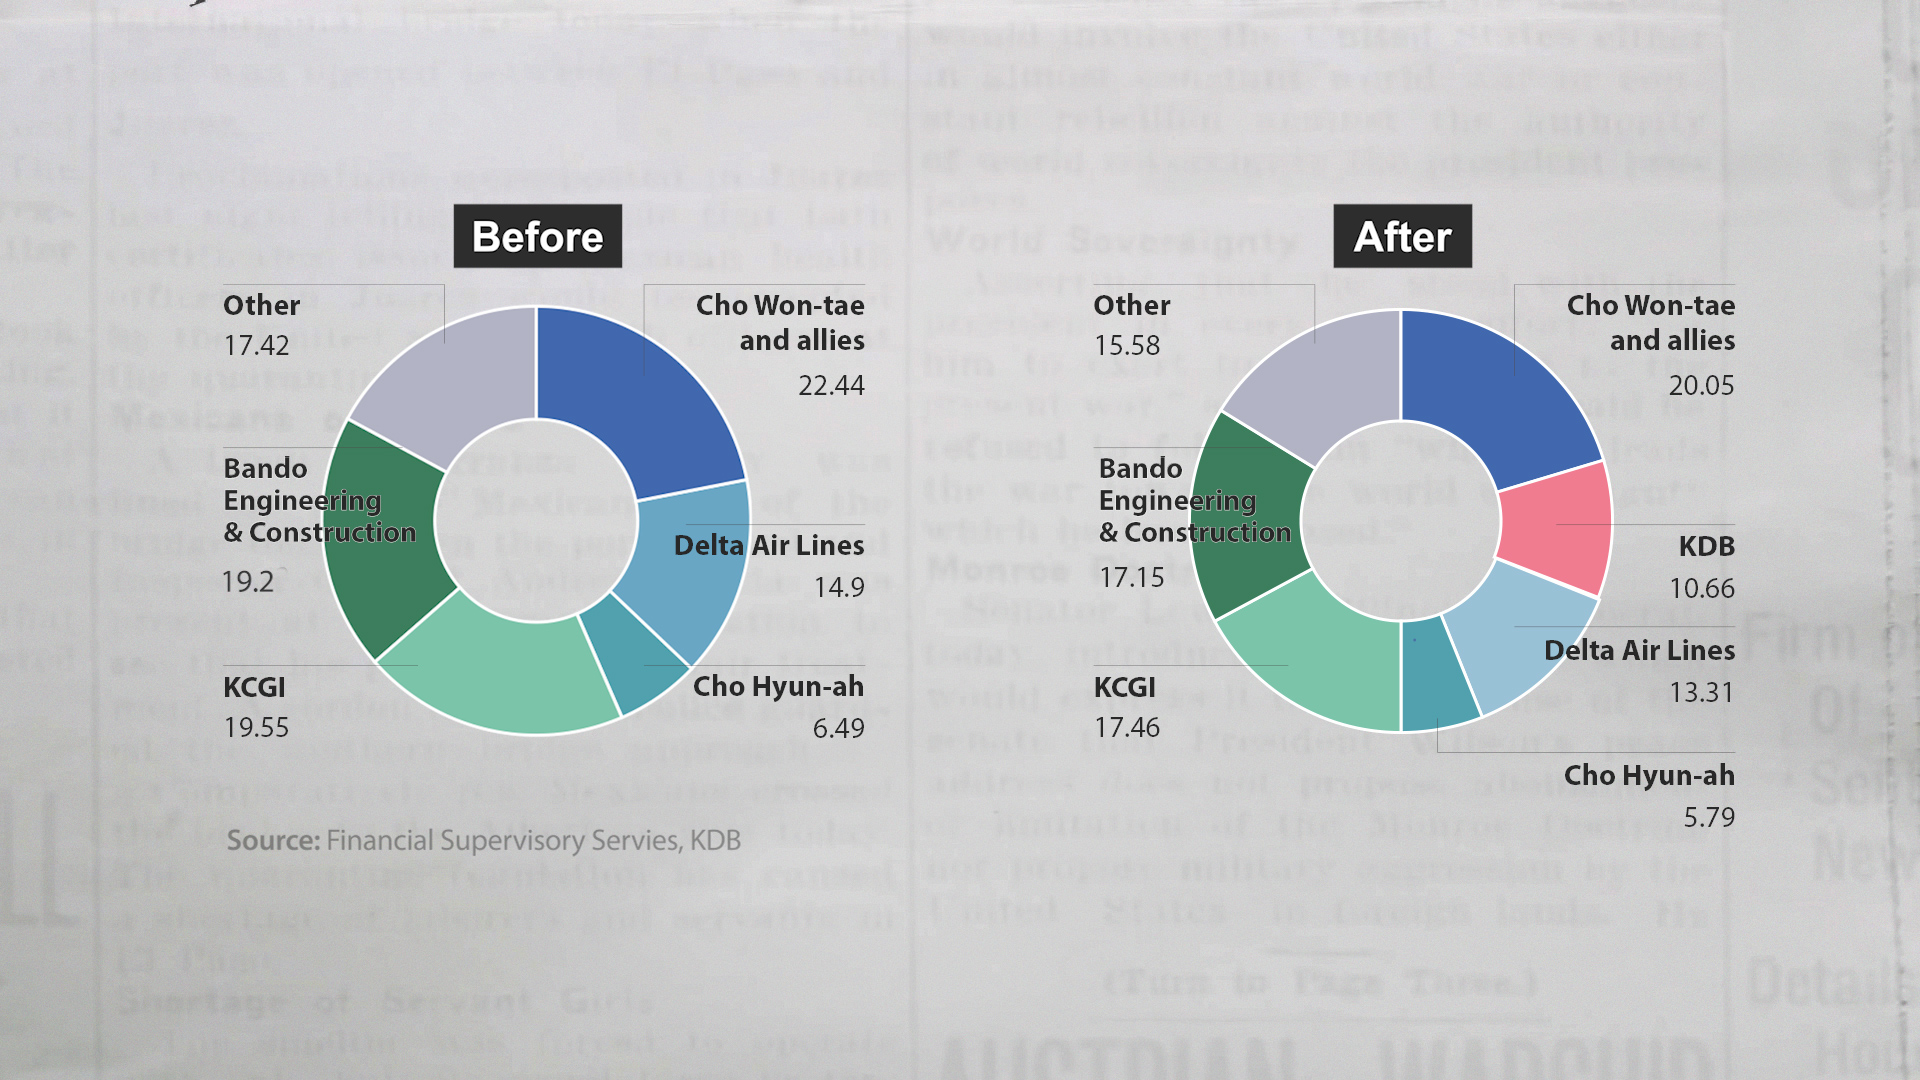 Hanjin KAL shareholdings before and after KDB financing